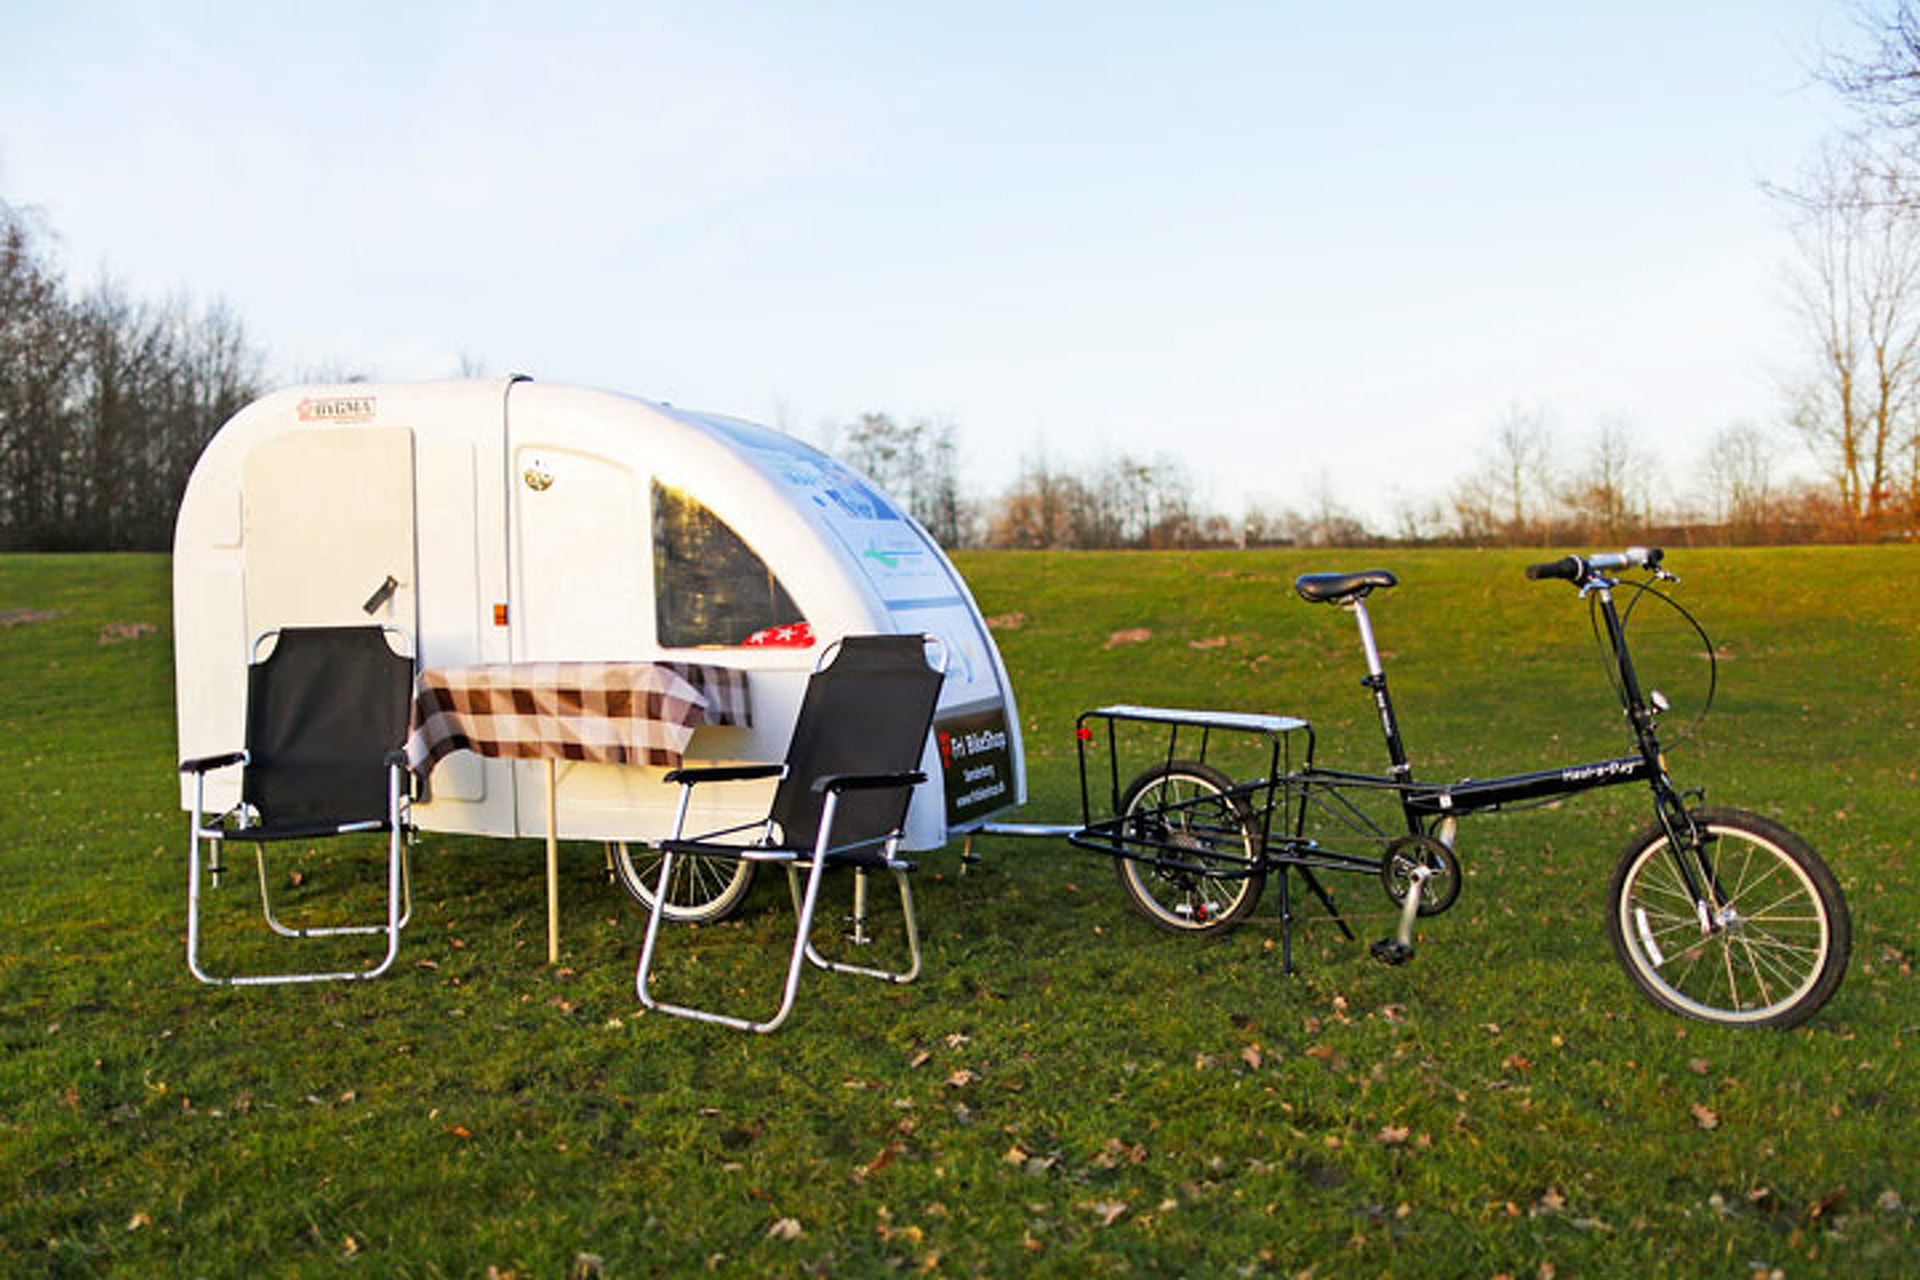 You Can Pull This Teeny Camping Trailer With a Bicycle